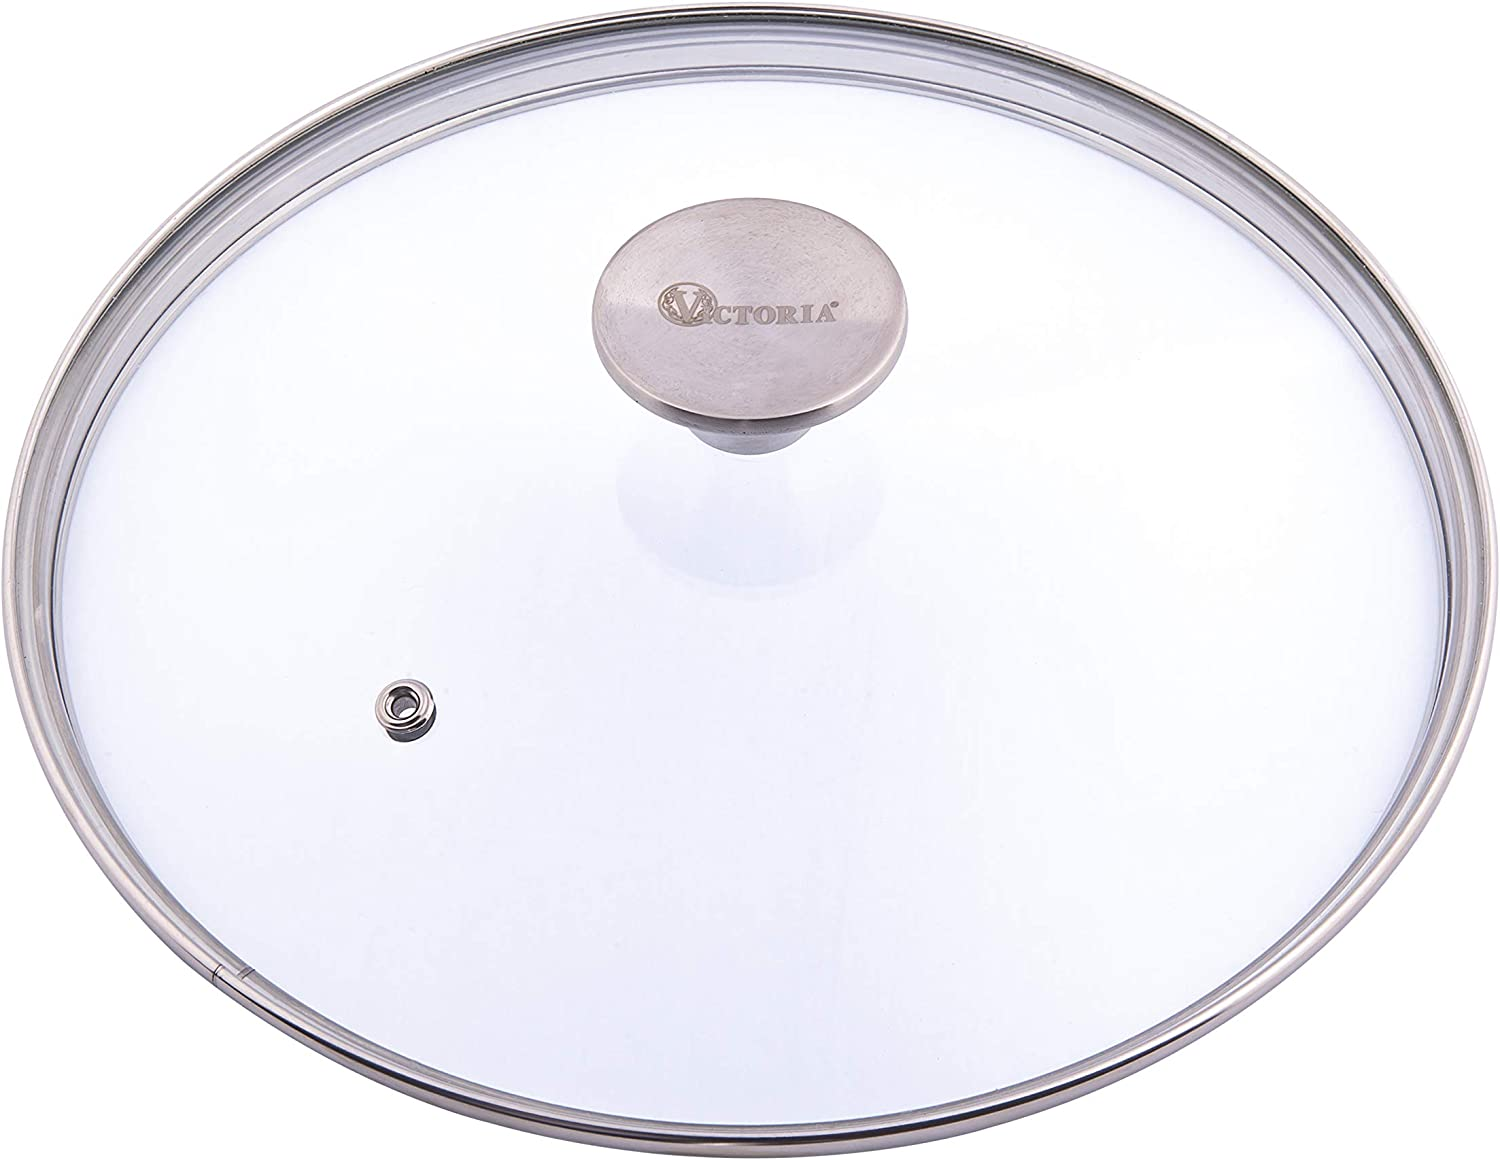 Victoria Glass Lid for 10 Inch Cast Iron Skillet, Frying Pan Lid with Stainless Steel Air Flow Knob